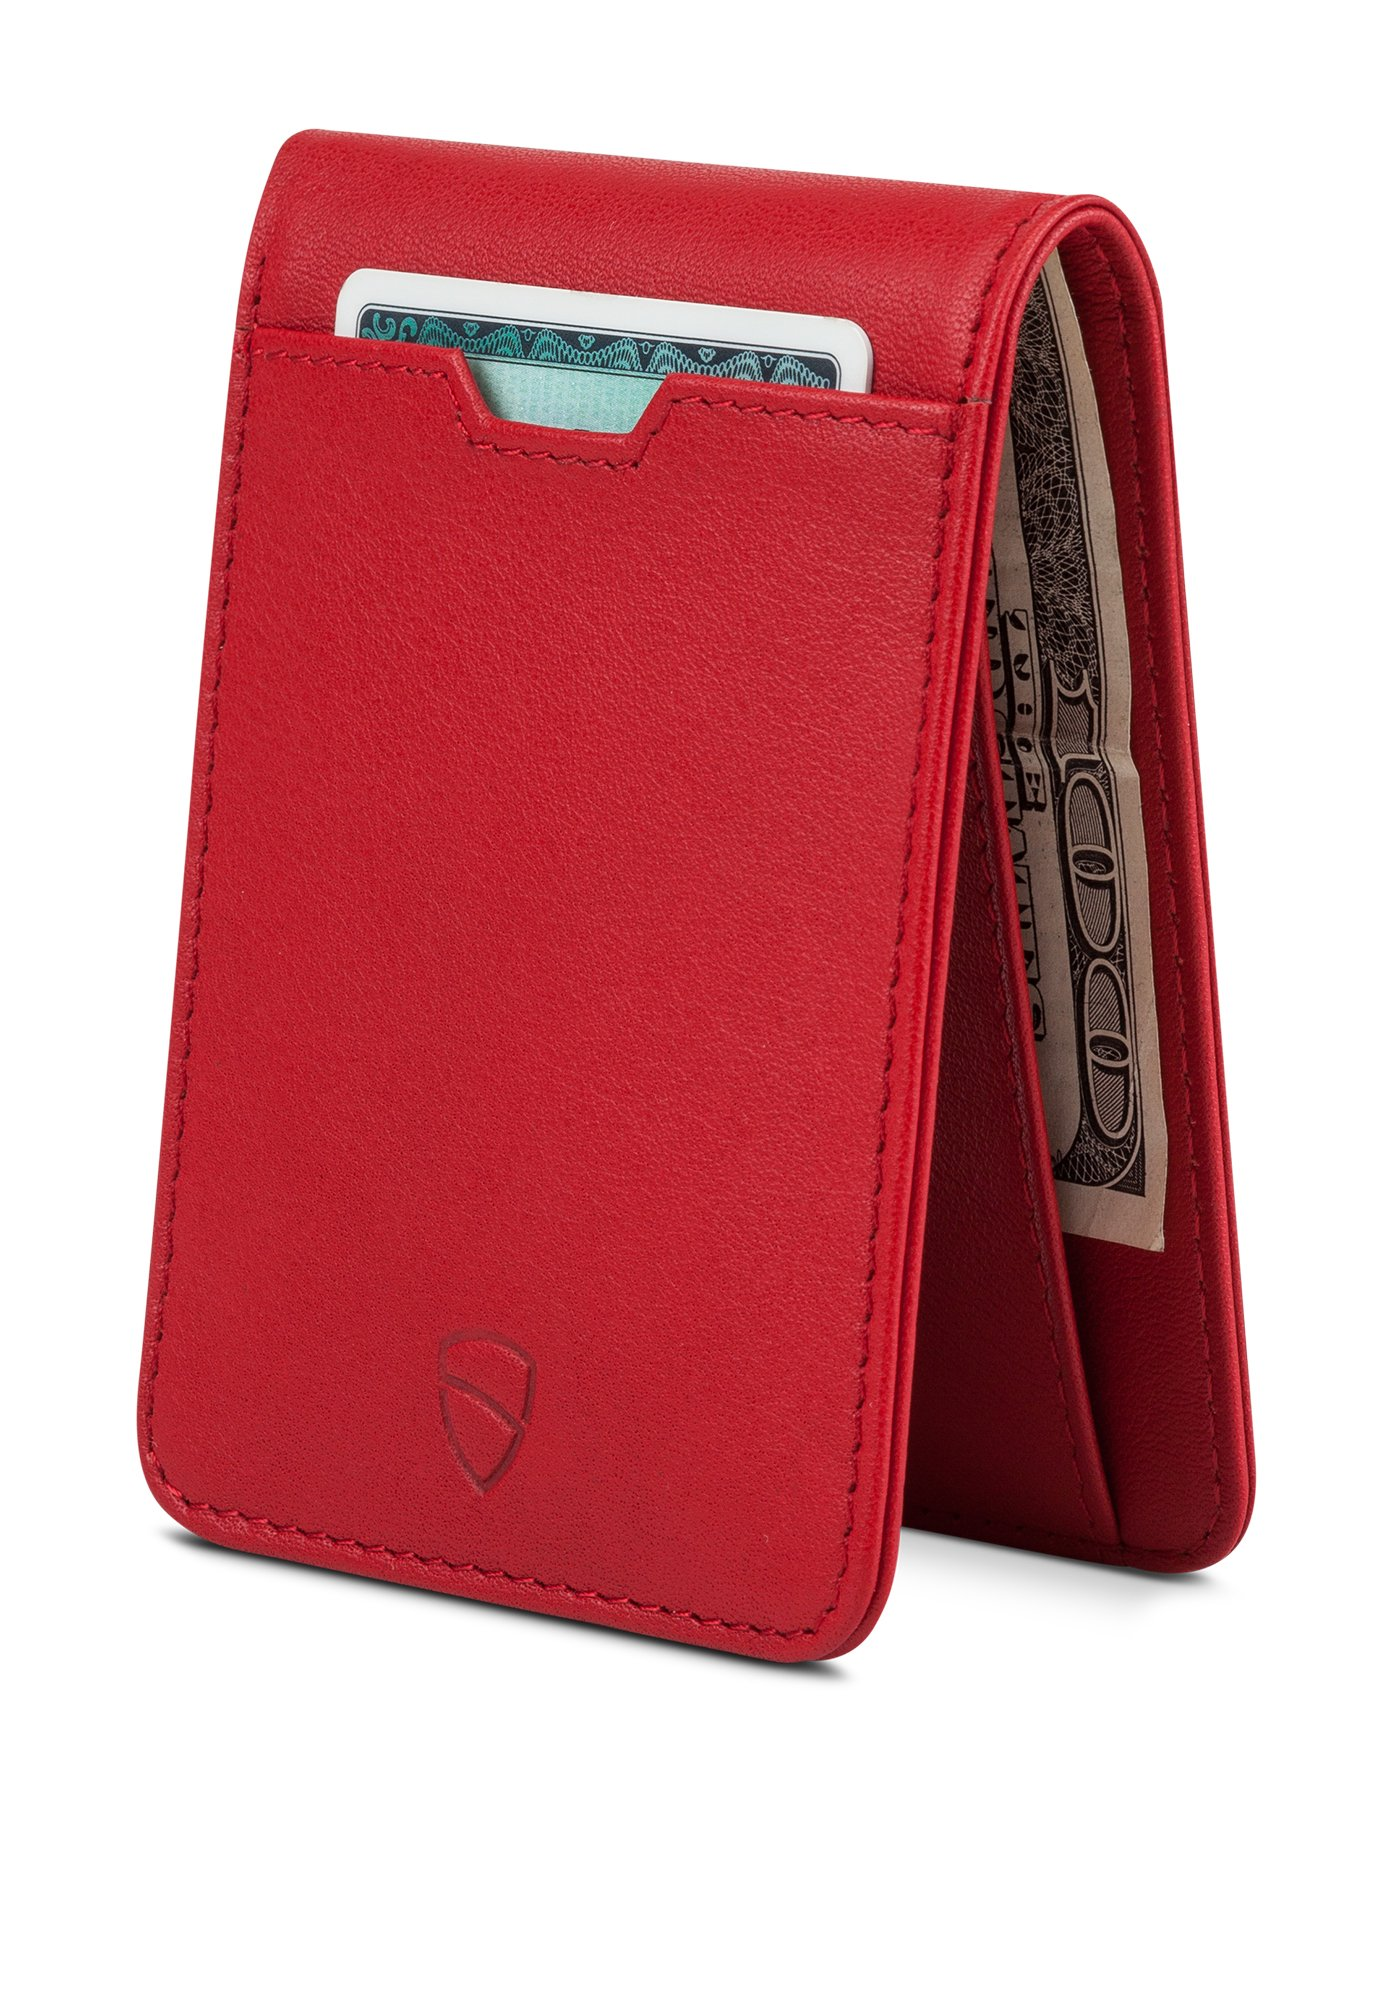 Vaultskin MANHATTAN Slim Bifold Wallet with RFID Protection for Cards and Cash (Carmine Red) by Vaultskin